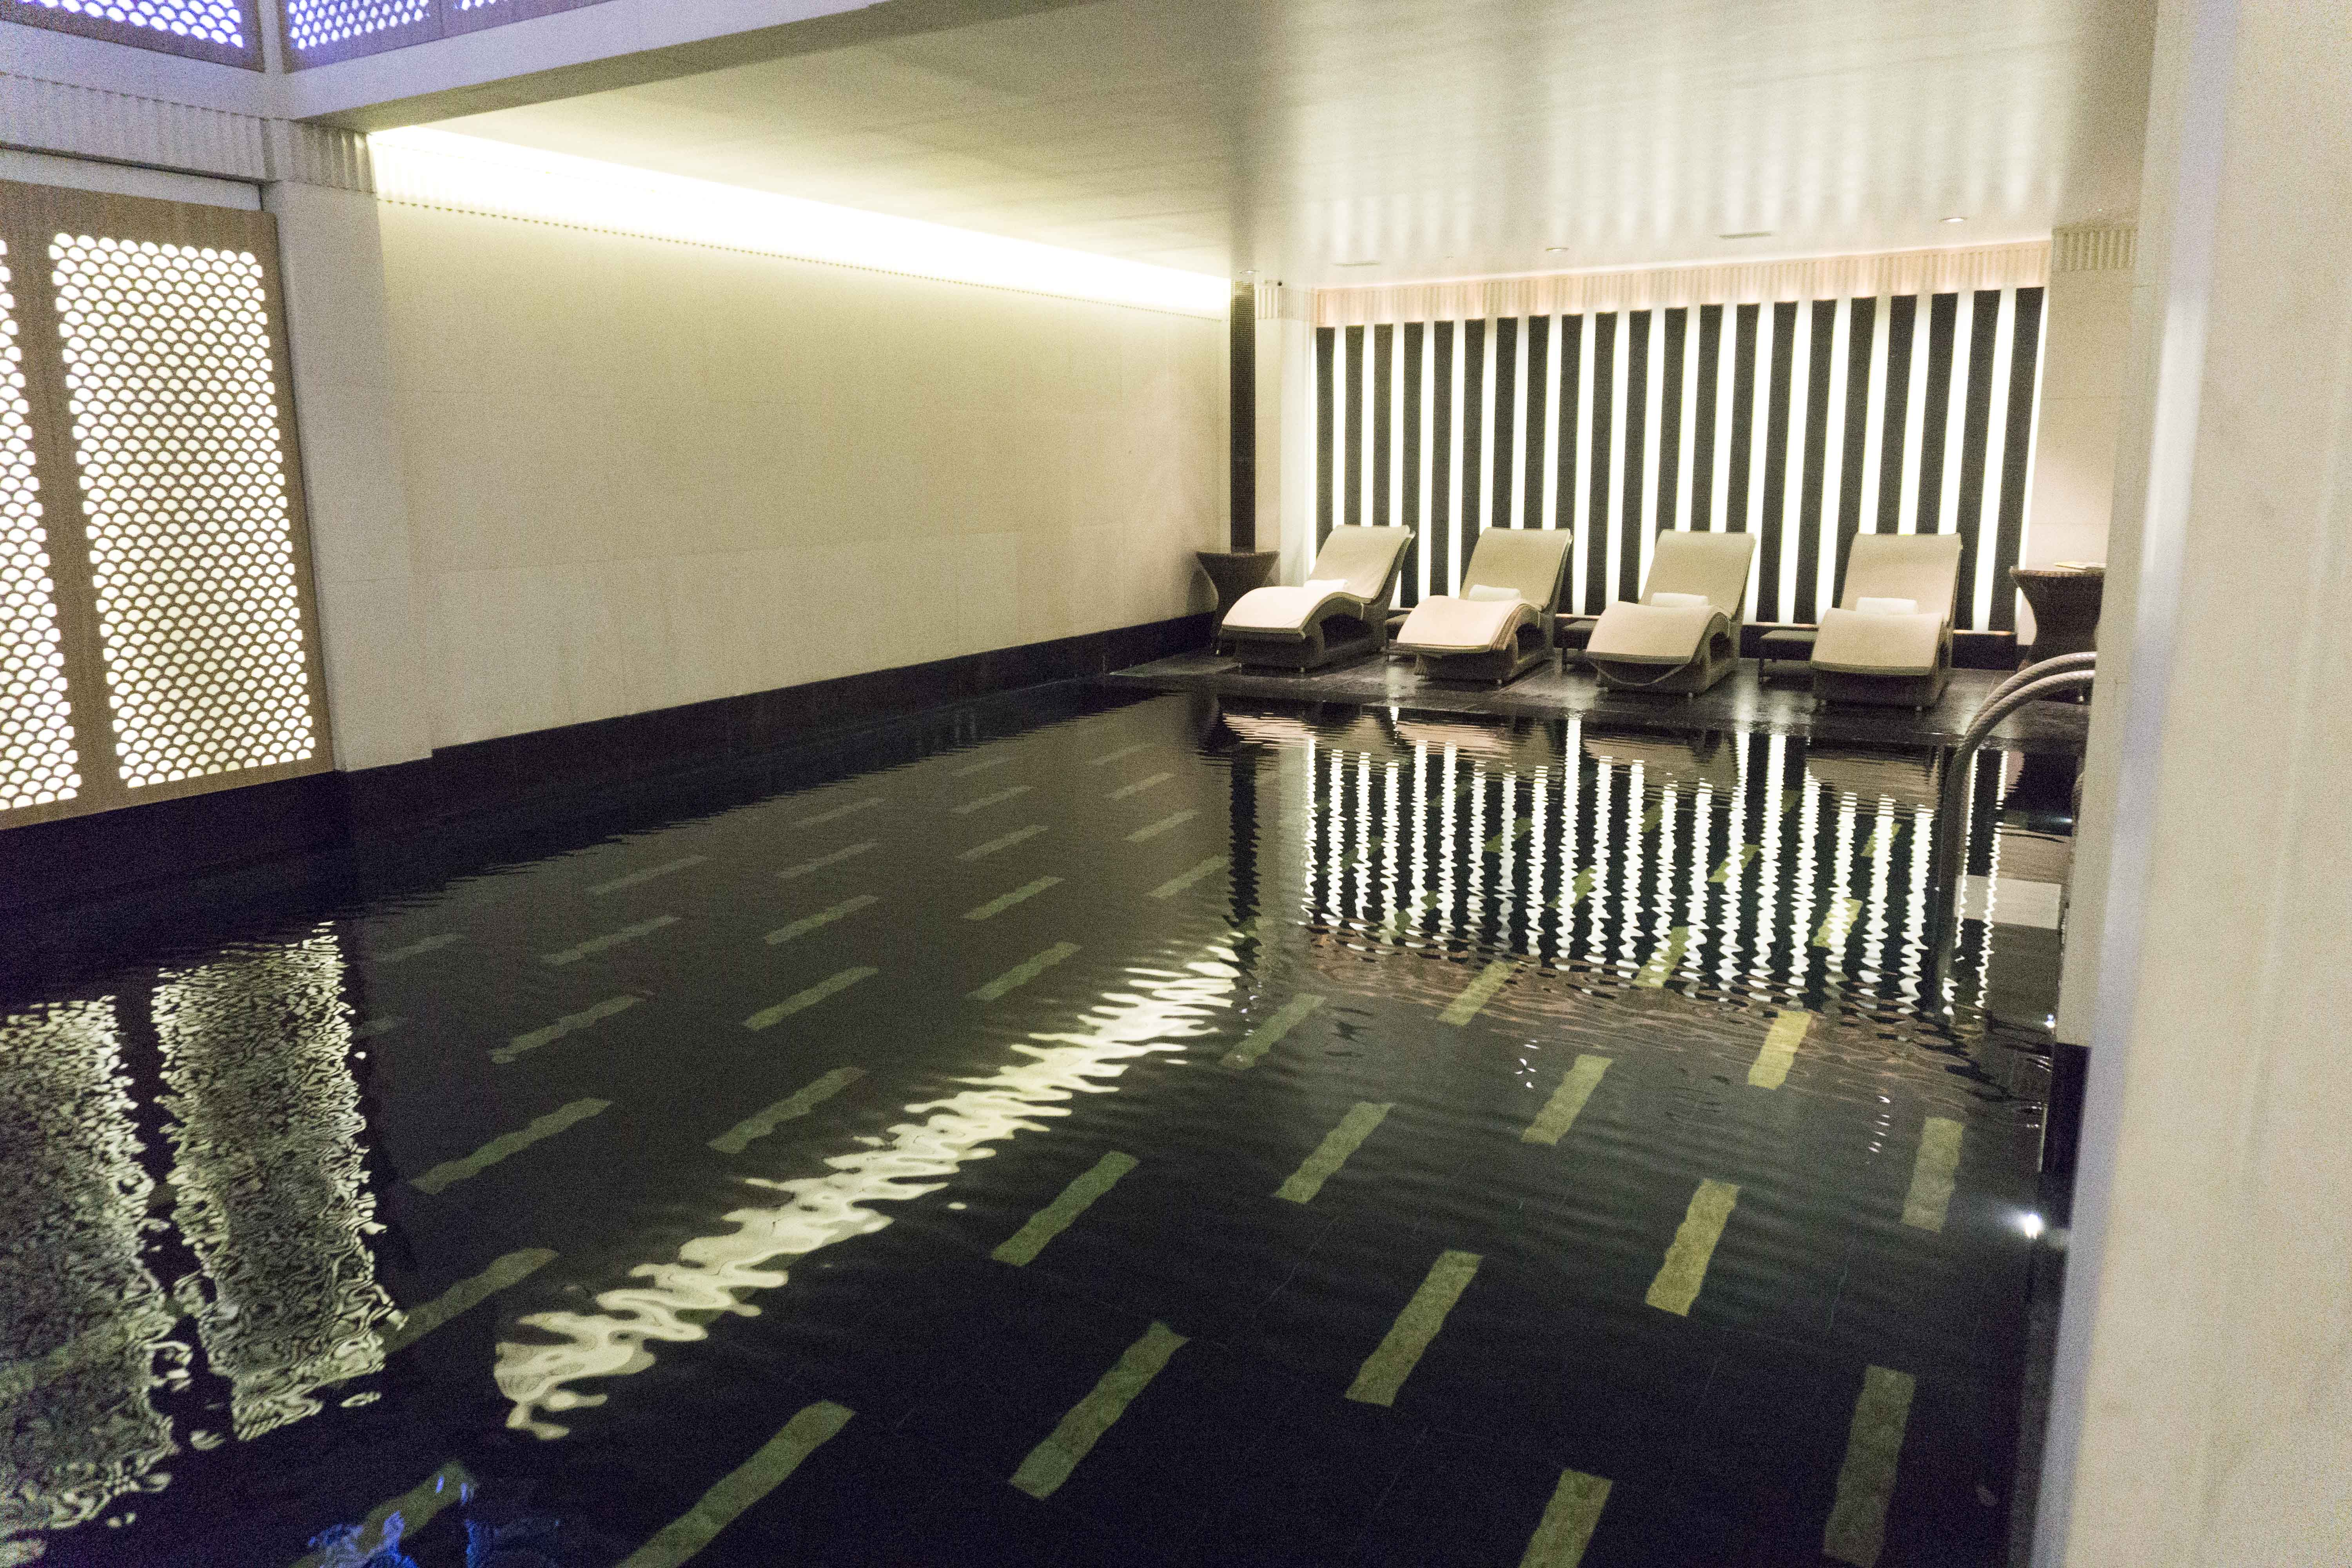 Swimming pool at the Connaught hotel